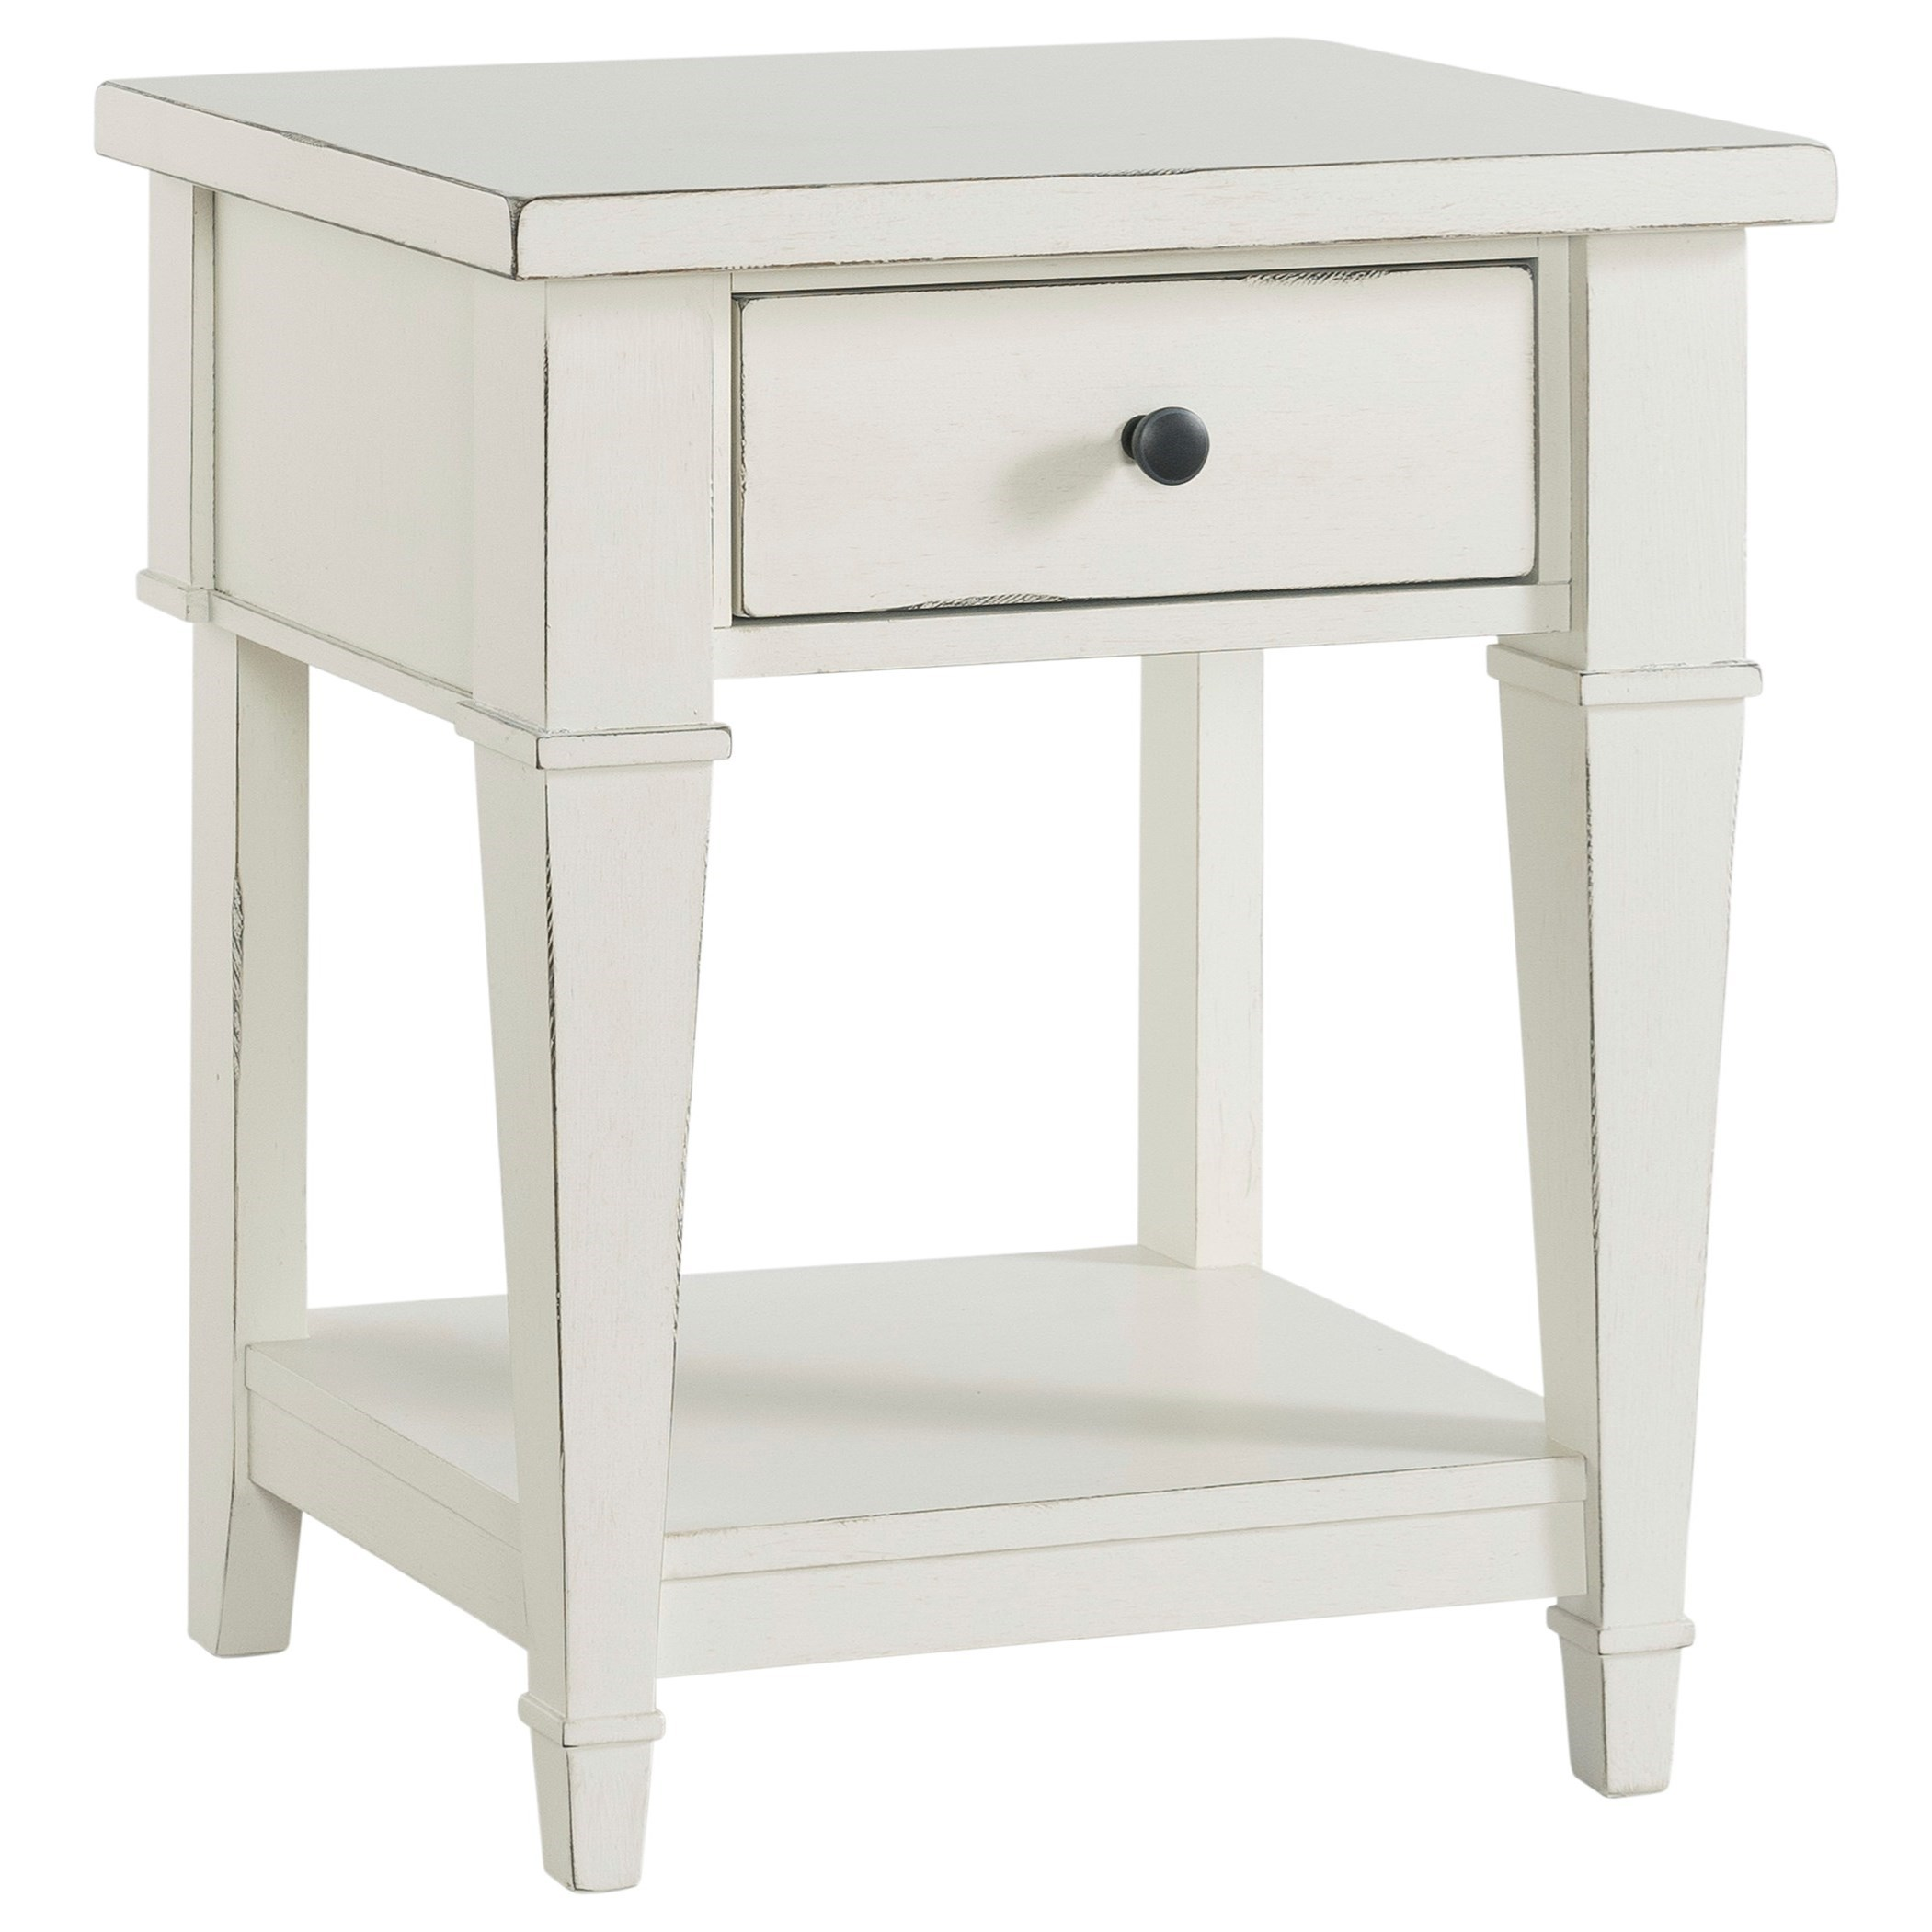 Astoria Youth Nightstand at Walker's Furniture